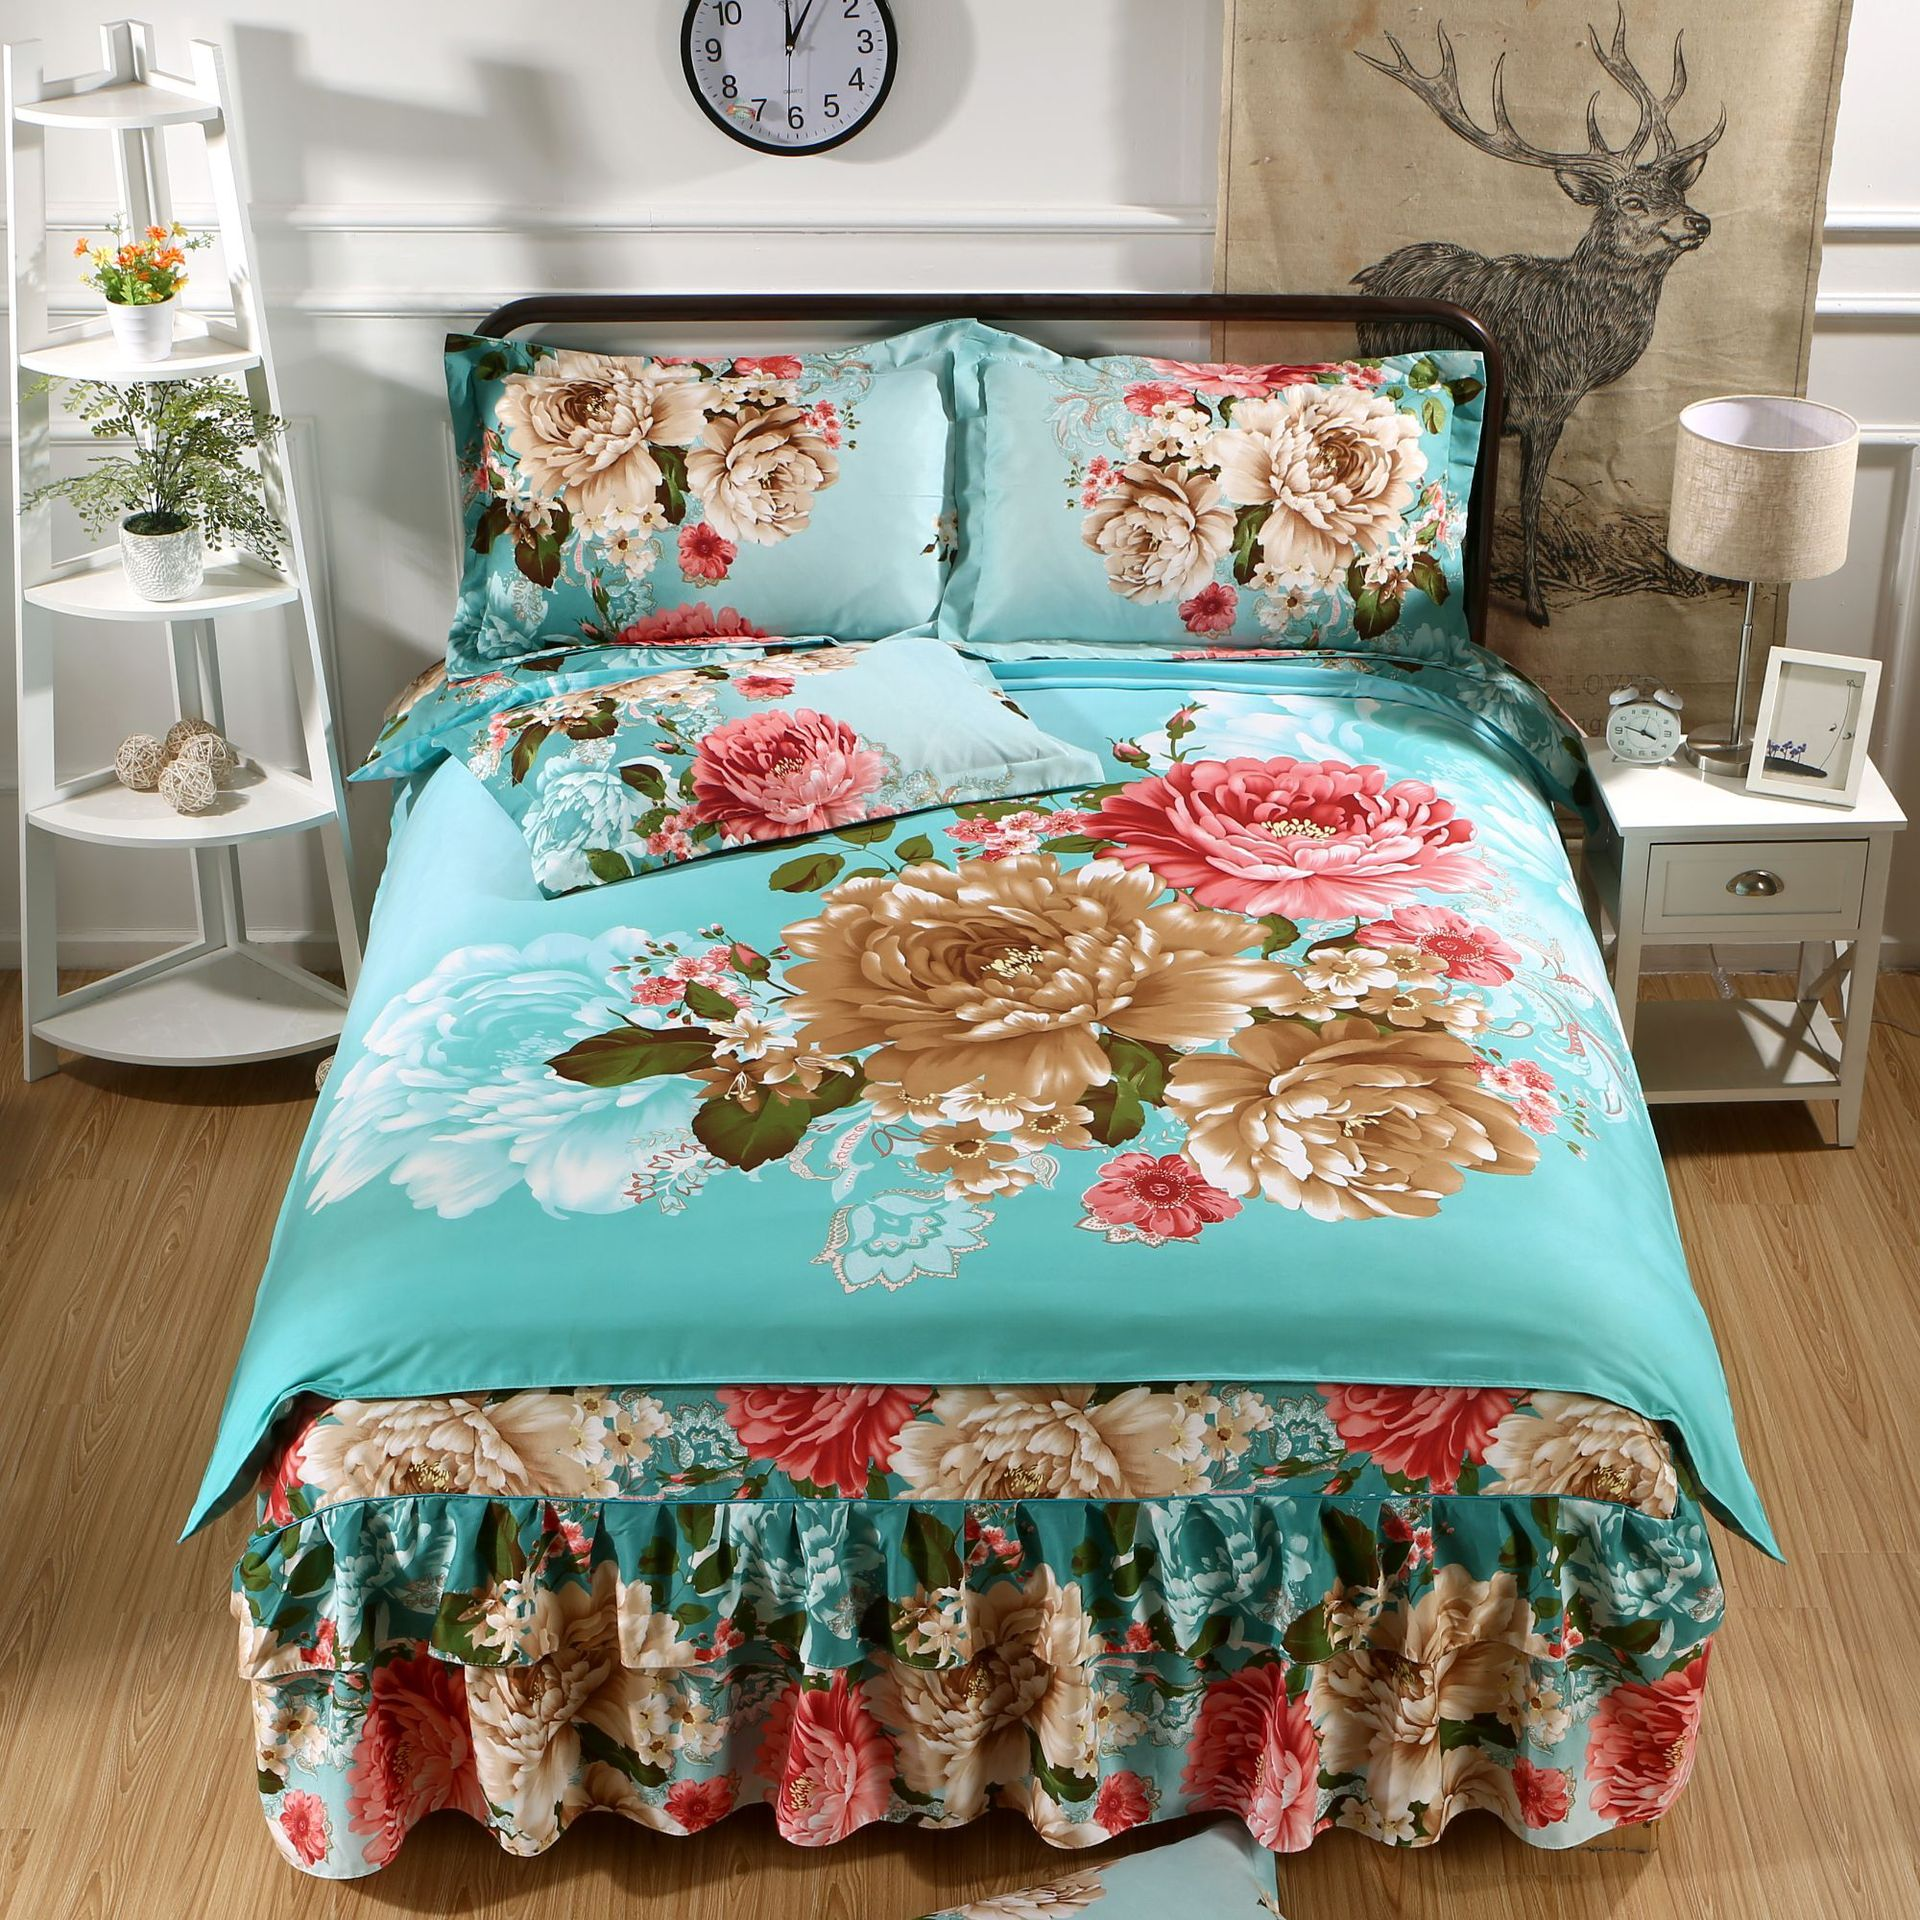 2019 Wechat Business Hot Selling Version of the Flower Plant Cashmere Wool Korean-style Princess Double Layer Four-piece of Bed